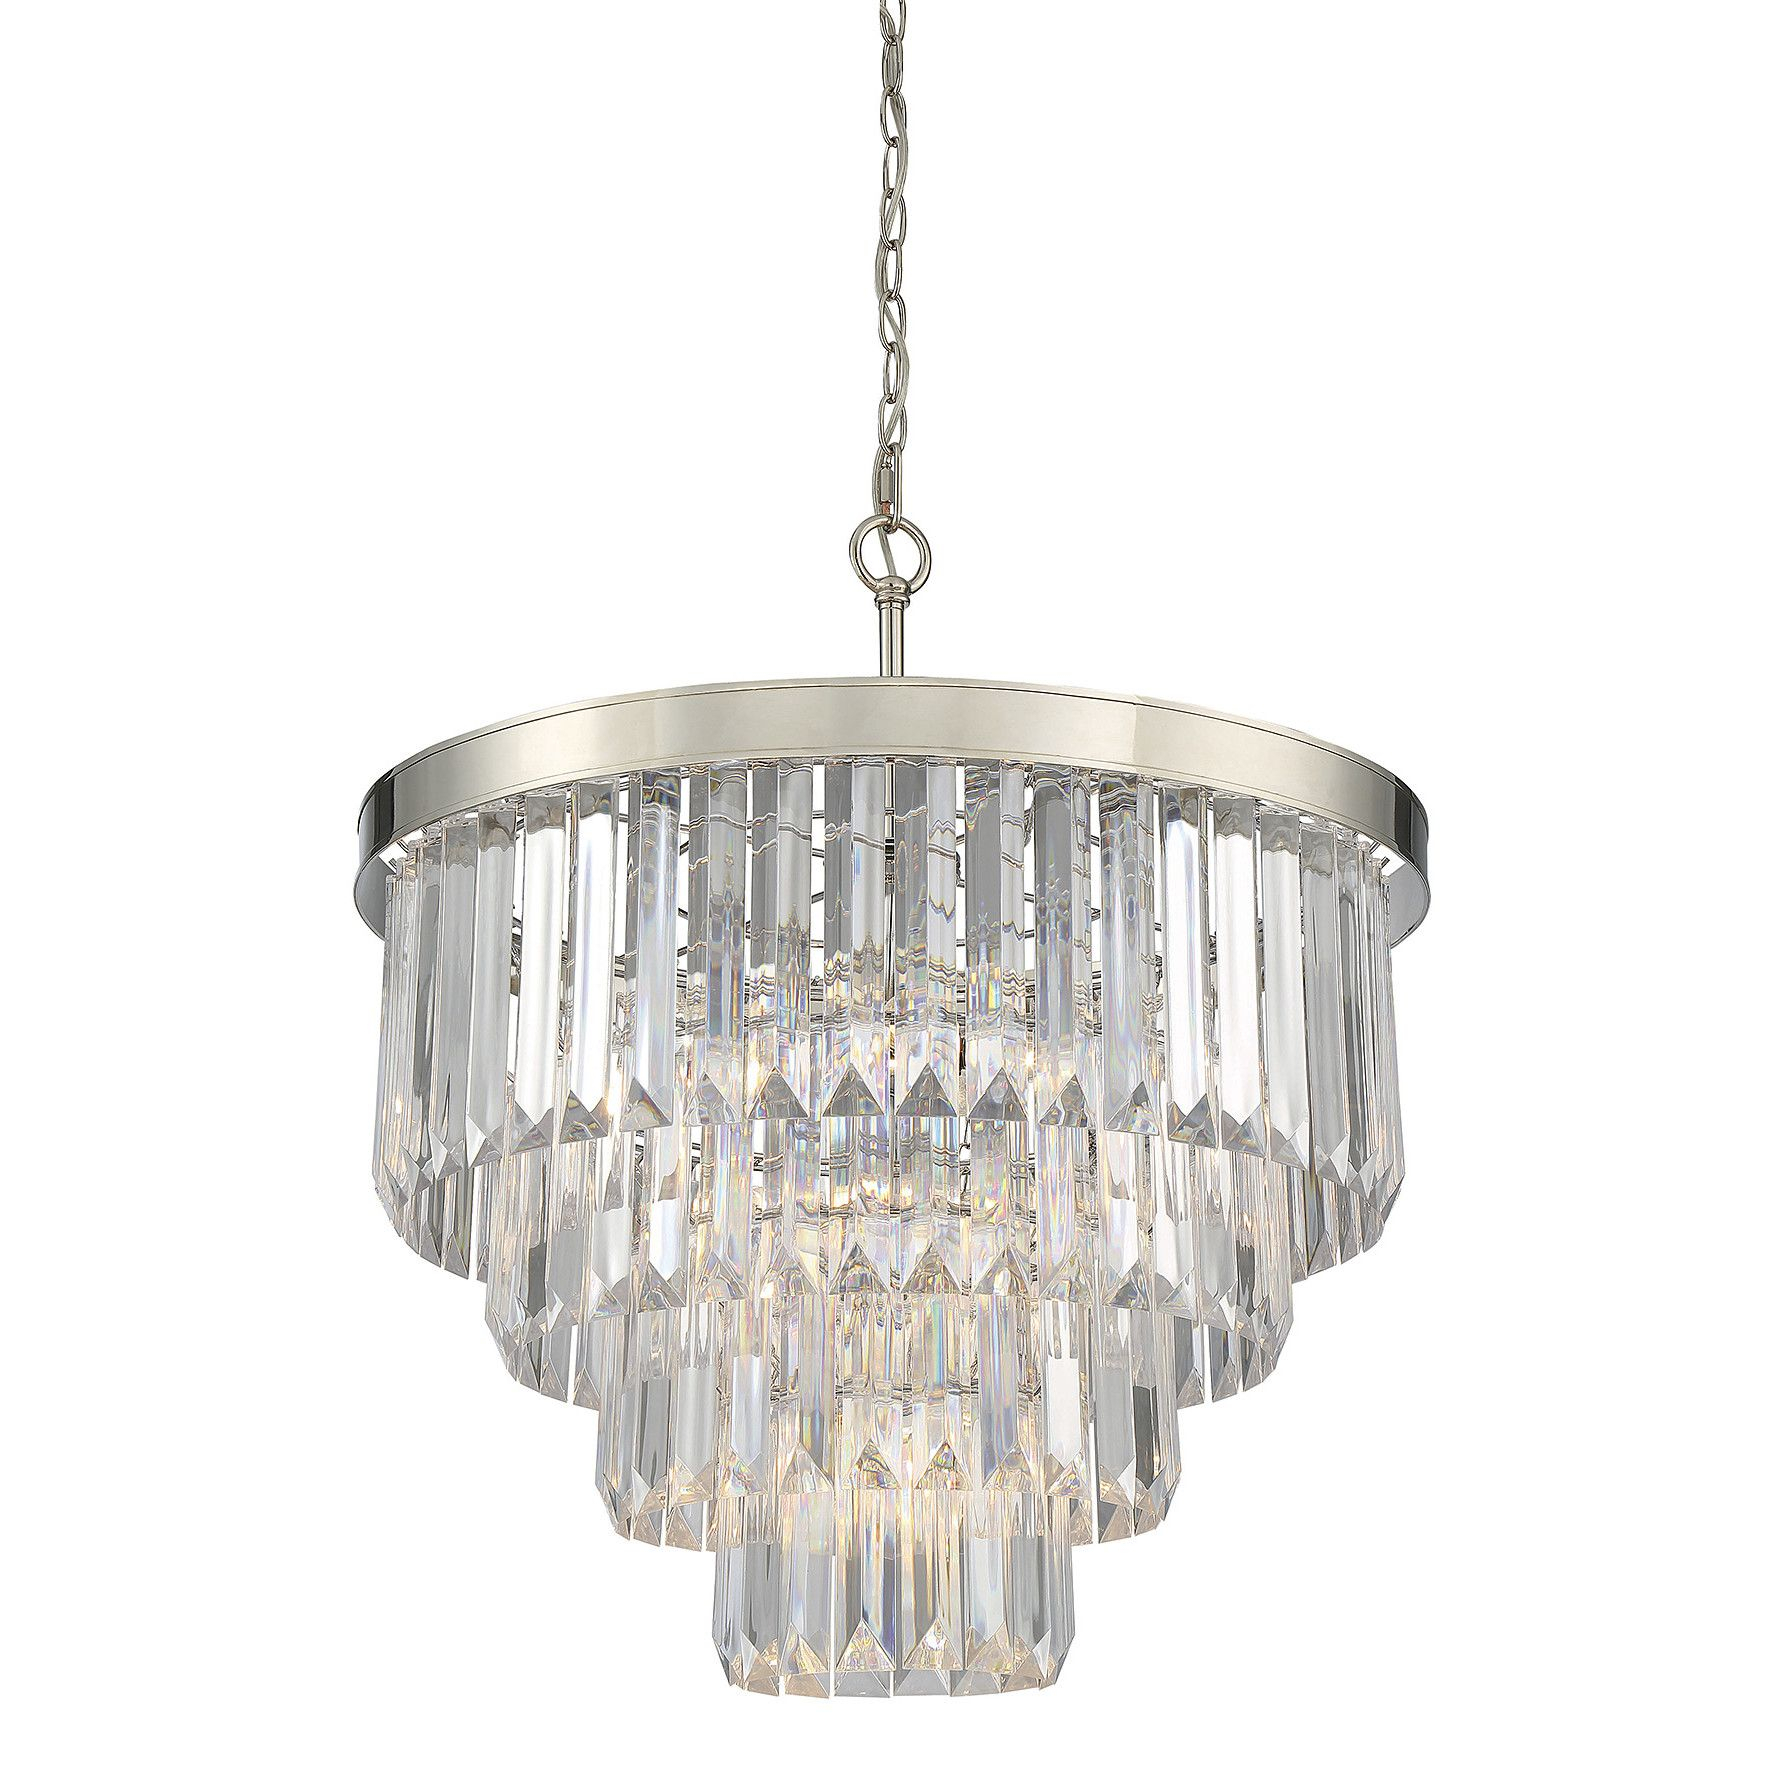 Mornimont 6 Light Drum Chandelier | Products | Bronze Inside Bramers 6 Light Novelty Chandeliers (View 7 of 30)